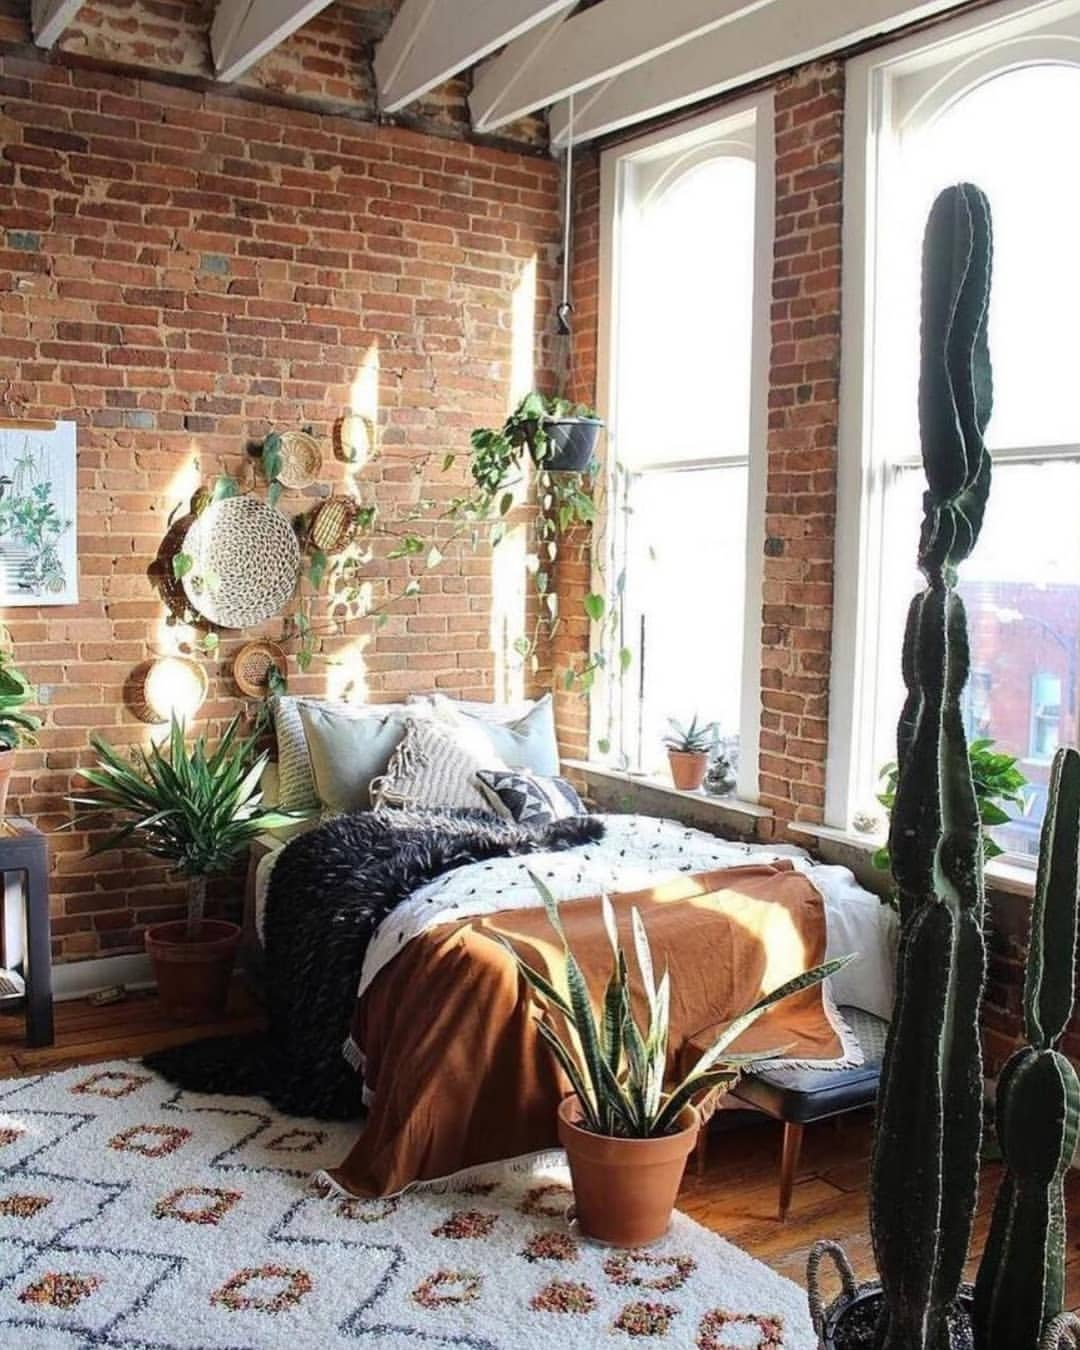 Bohemian Bedrooms That'll Make You Want to Redecorate ASAP